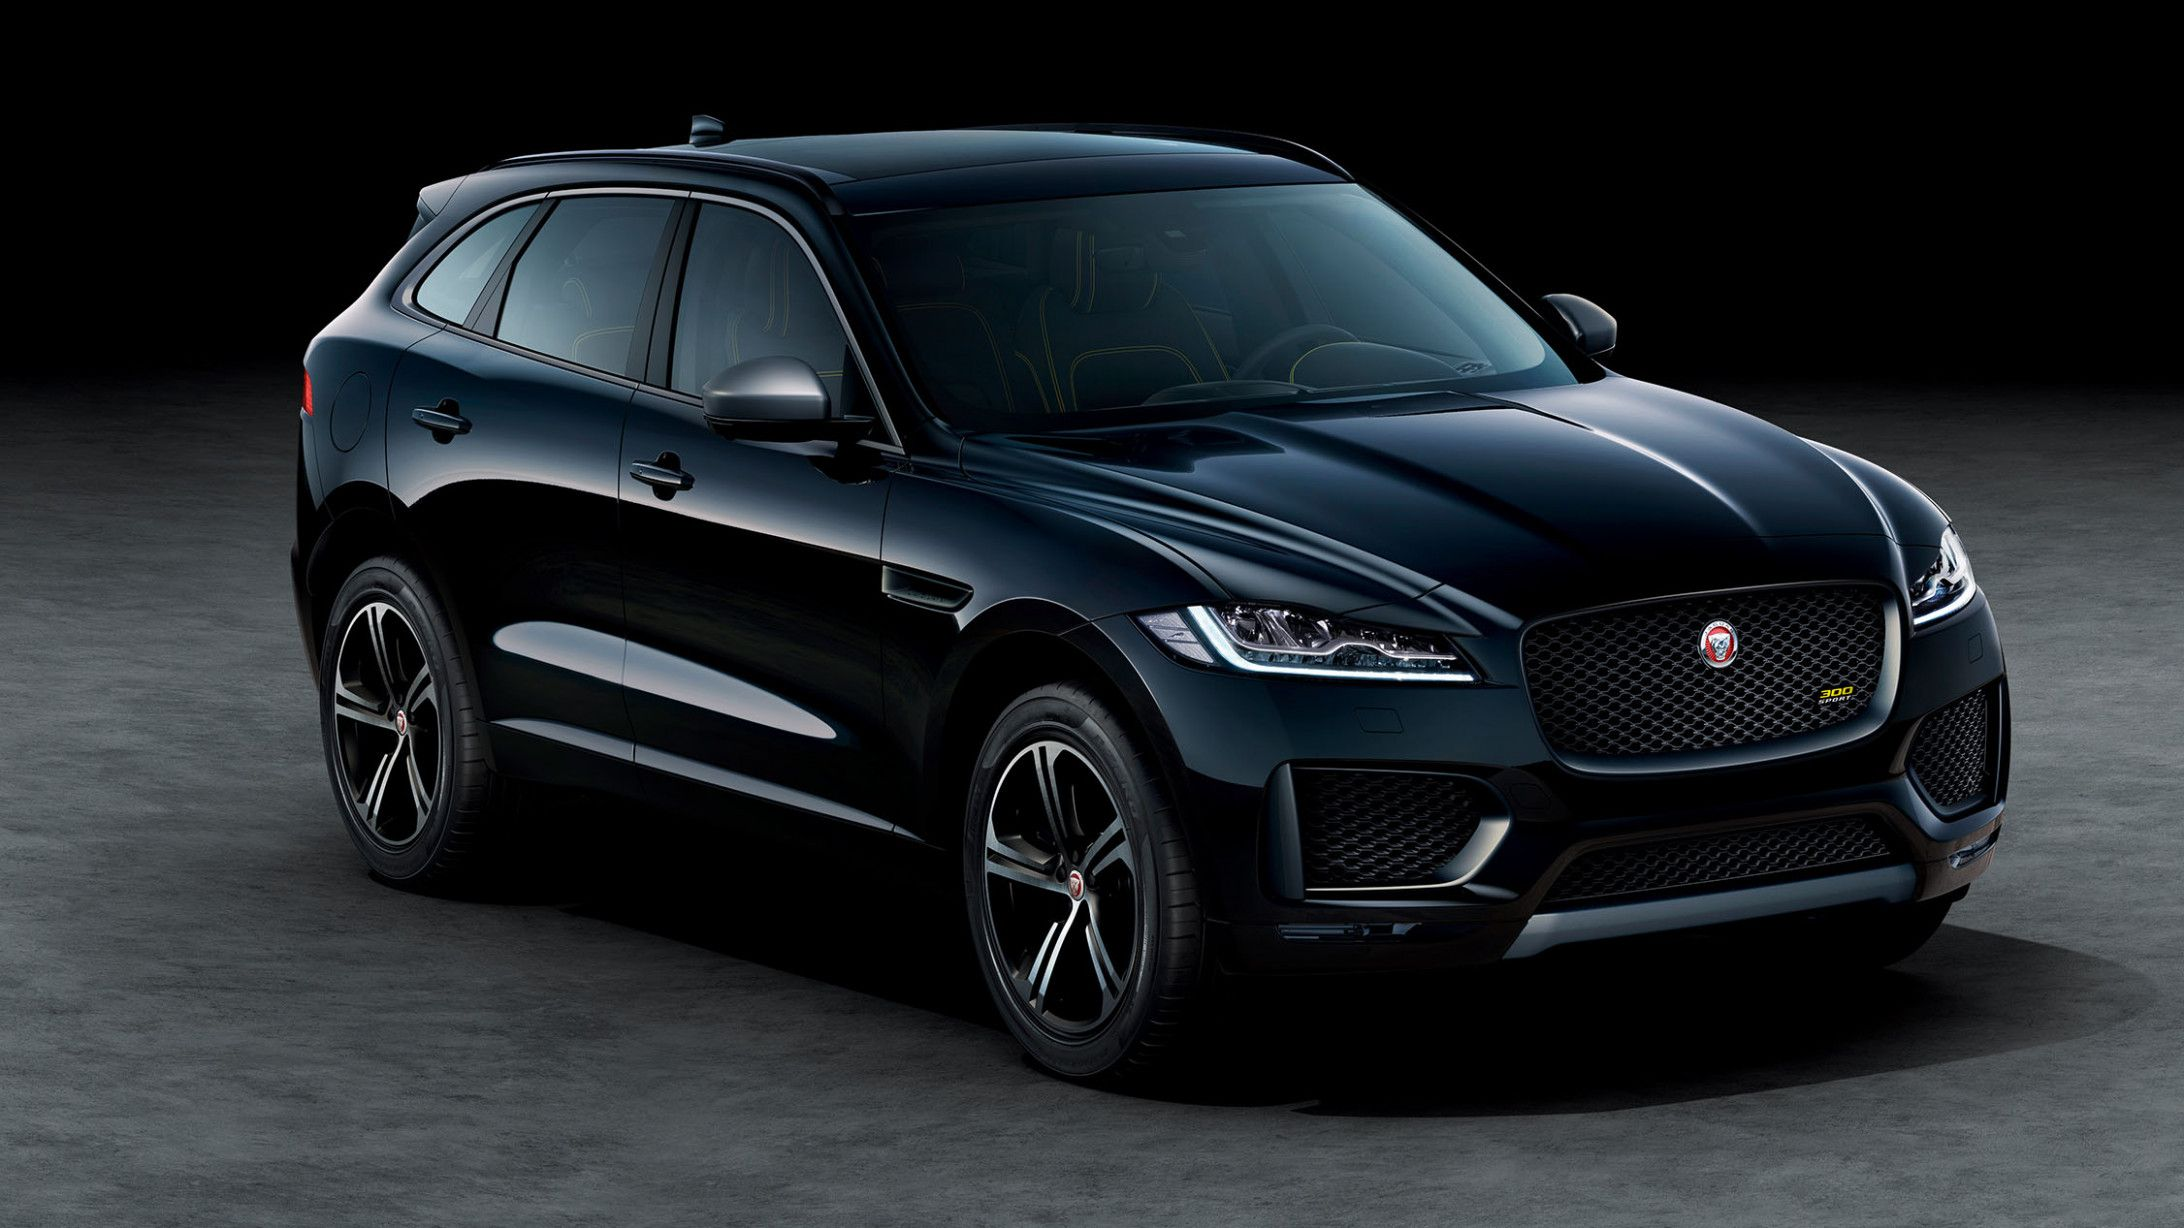 12 Wallpaper 2020 Jaguar Jeep Price In 2020 Jaguar Suv Jaguar Suv